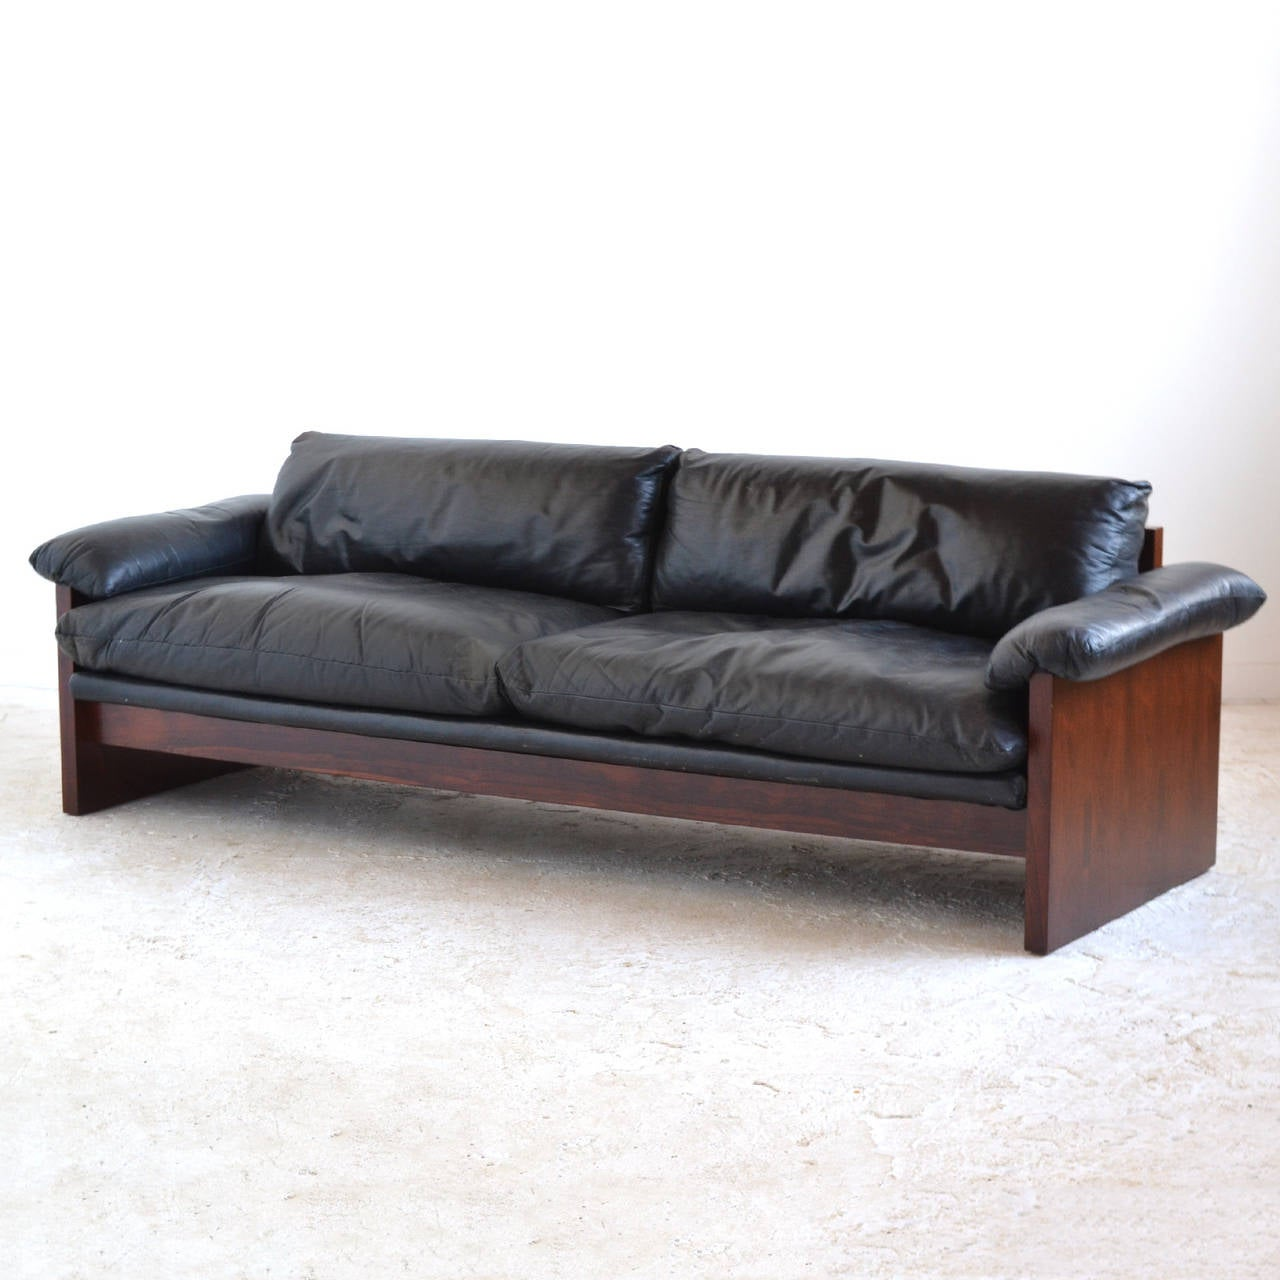 down filled leather sectional sofa jackknife replacement rosewood with cushions at 1stdibs